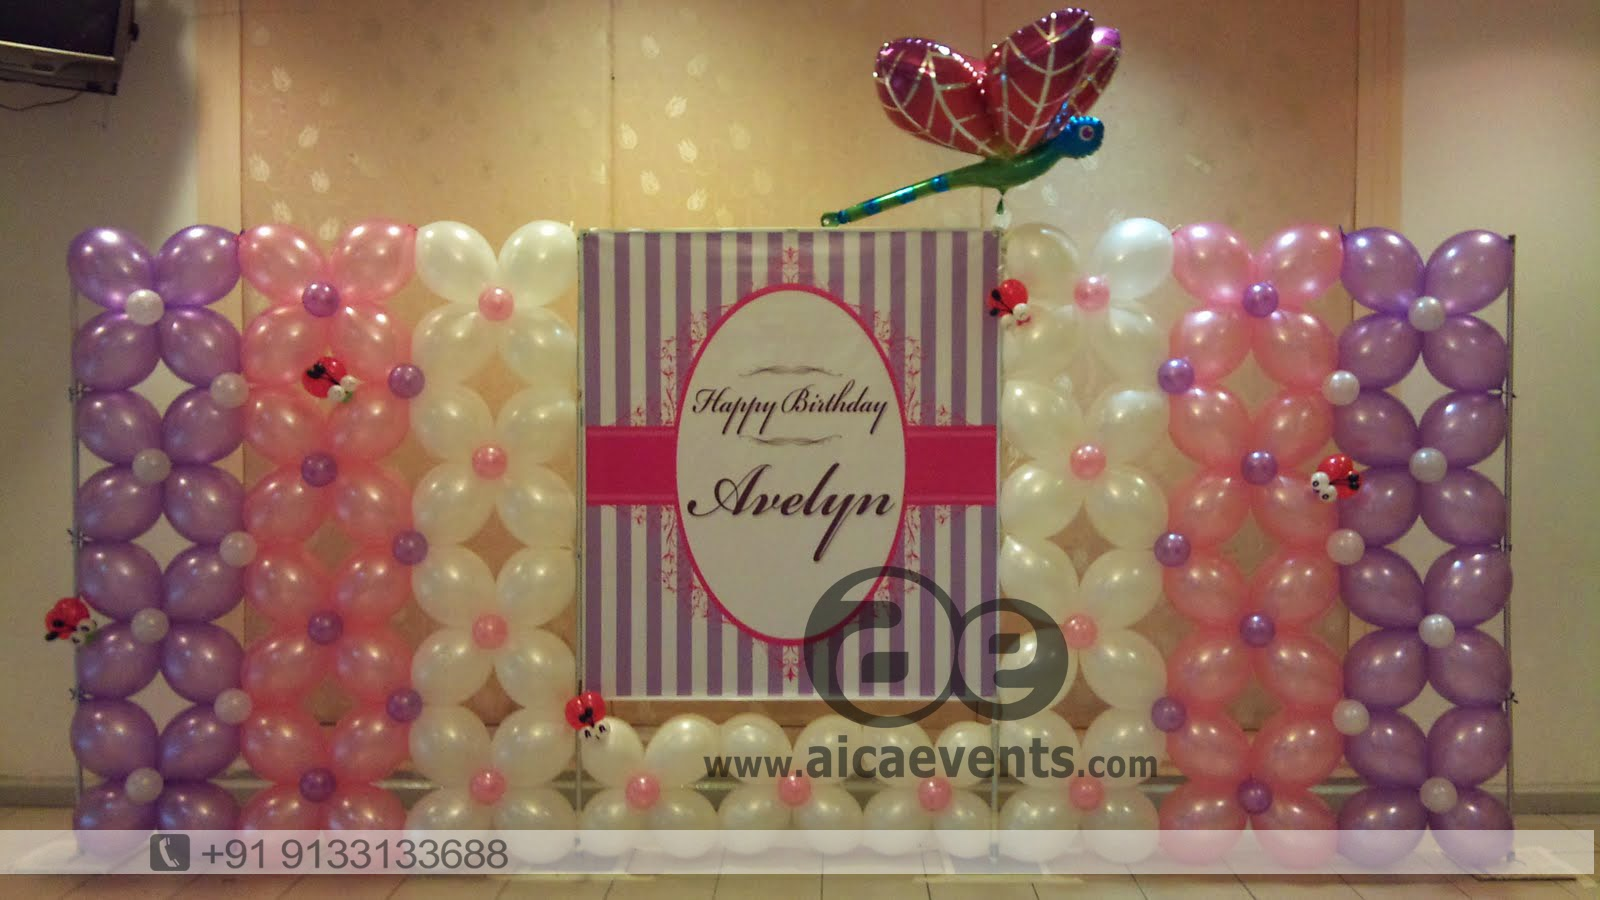 Aicaevents India Balloon Decoration For Birthday Parties